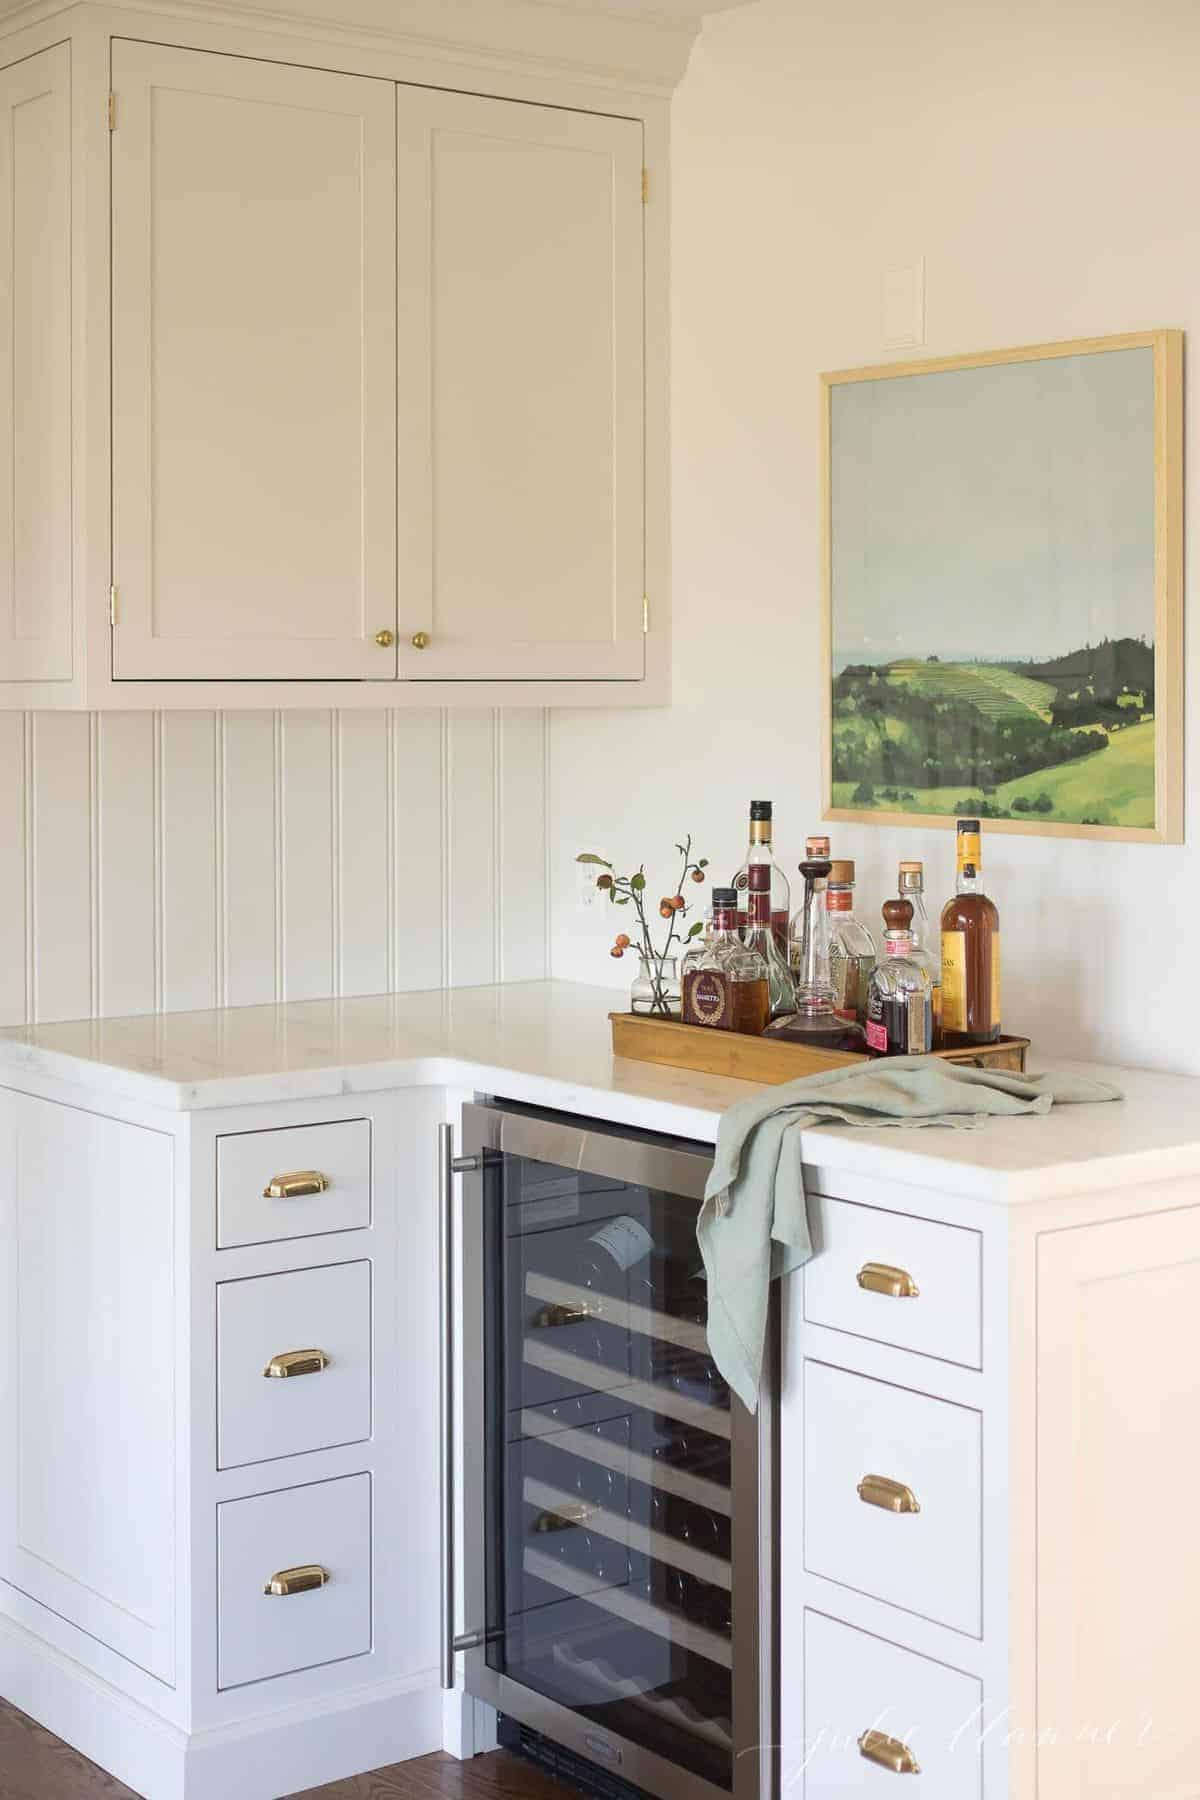 White kitchen cabinets with a bar area and wine fridge, fall berries to the side.